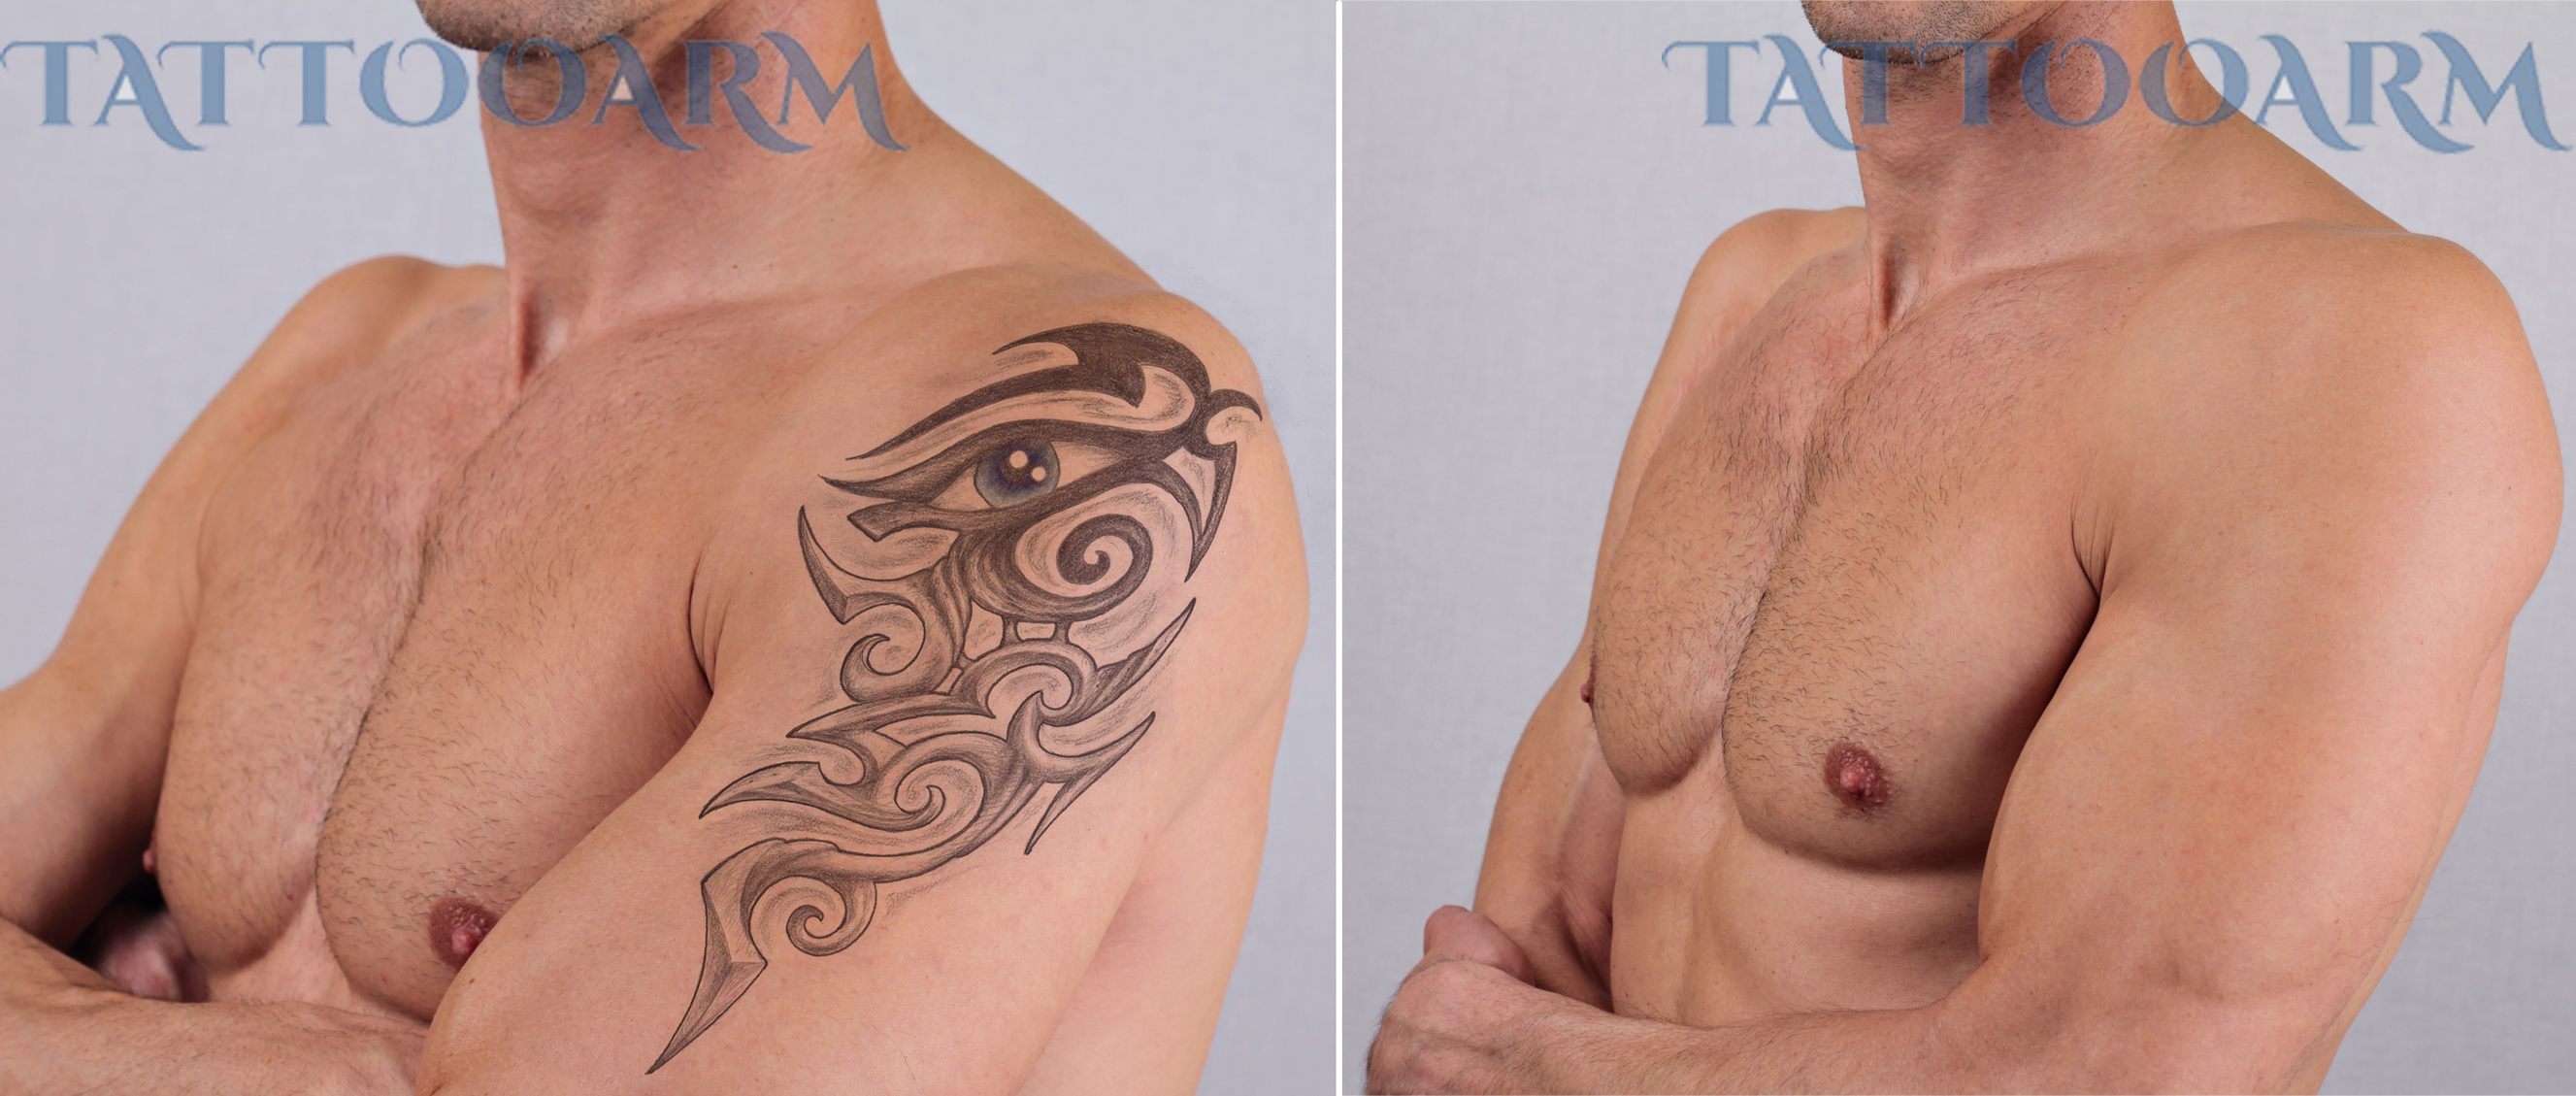 Home Tattoo Removal Natural Tattoo Removal Methods Ideas And Designs